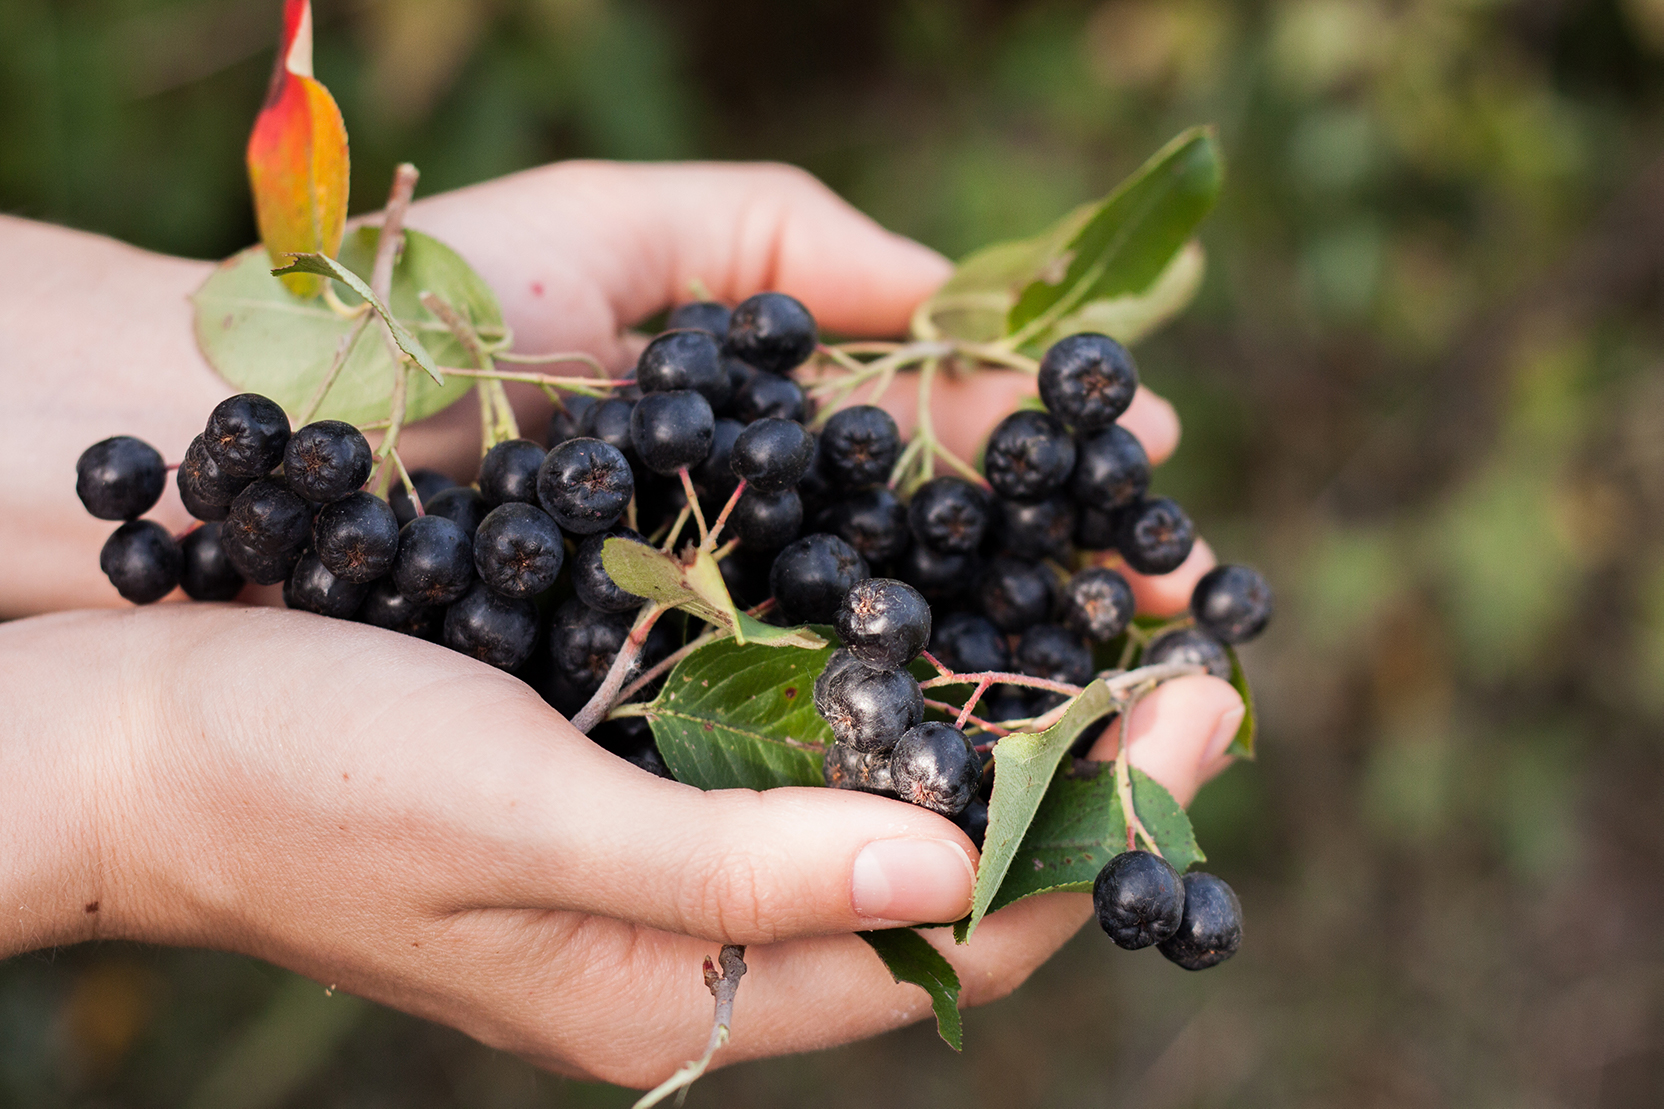 New meta analysis confirms significant clinical cardiovascular benefits of aronia berry